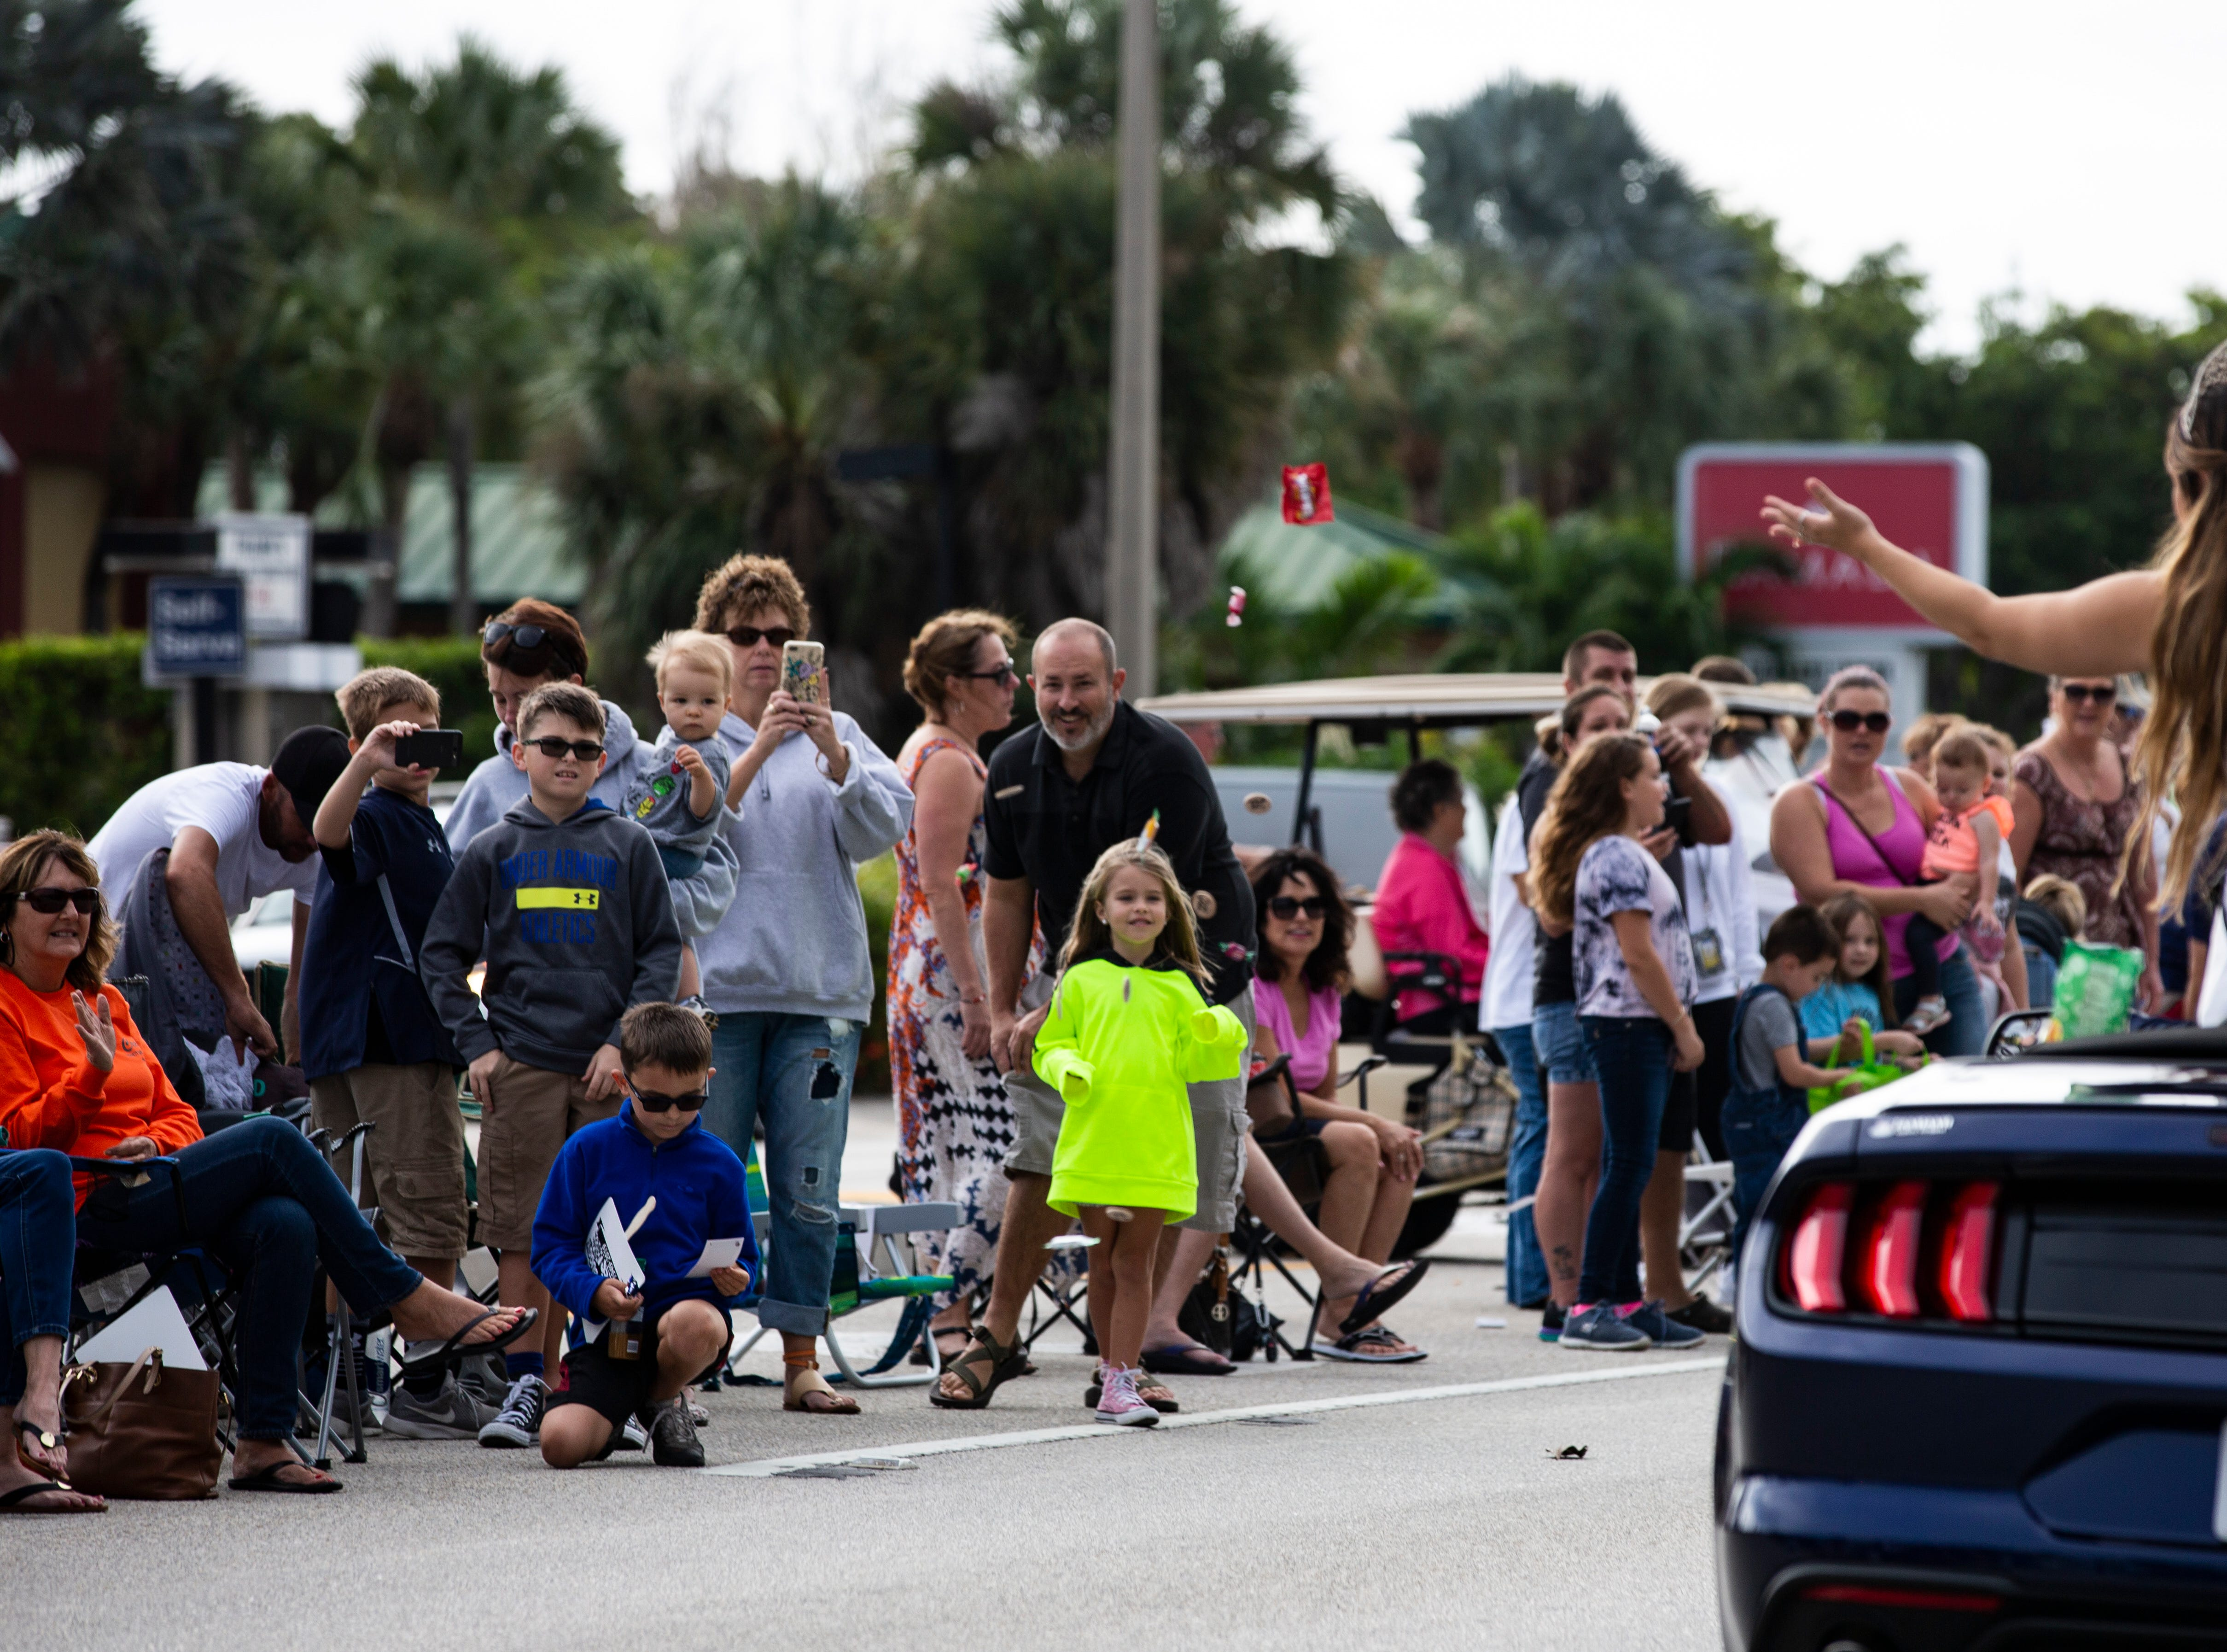 The 70th annual Swamp Buggy Parade hit Naples Saturday morning, Nov. 3, 2018. The parade featured past Swamp Buggy Queens, Naples High School marching band, racing buggies and Swampy - the race mascot, among other things.